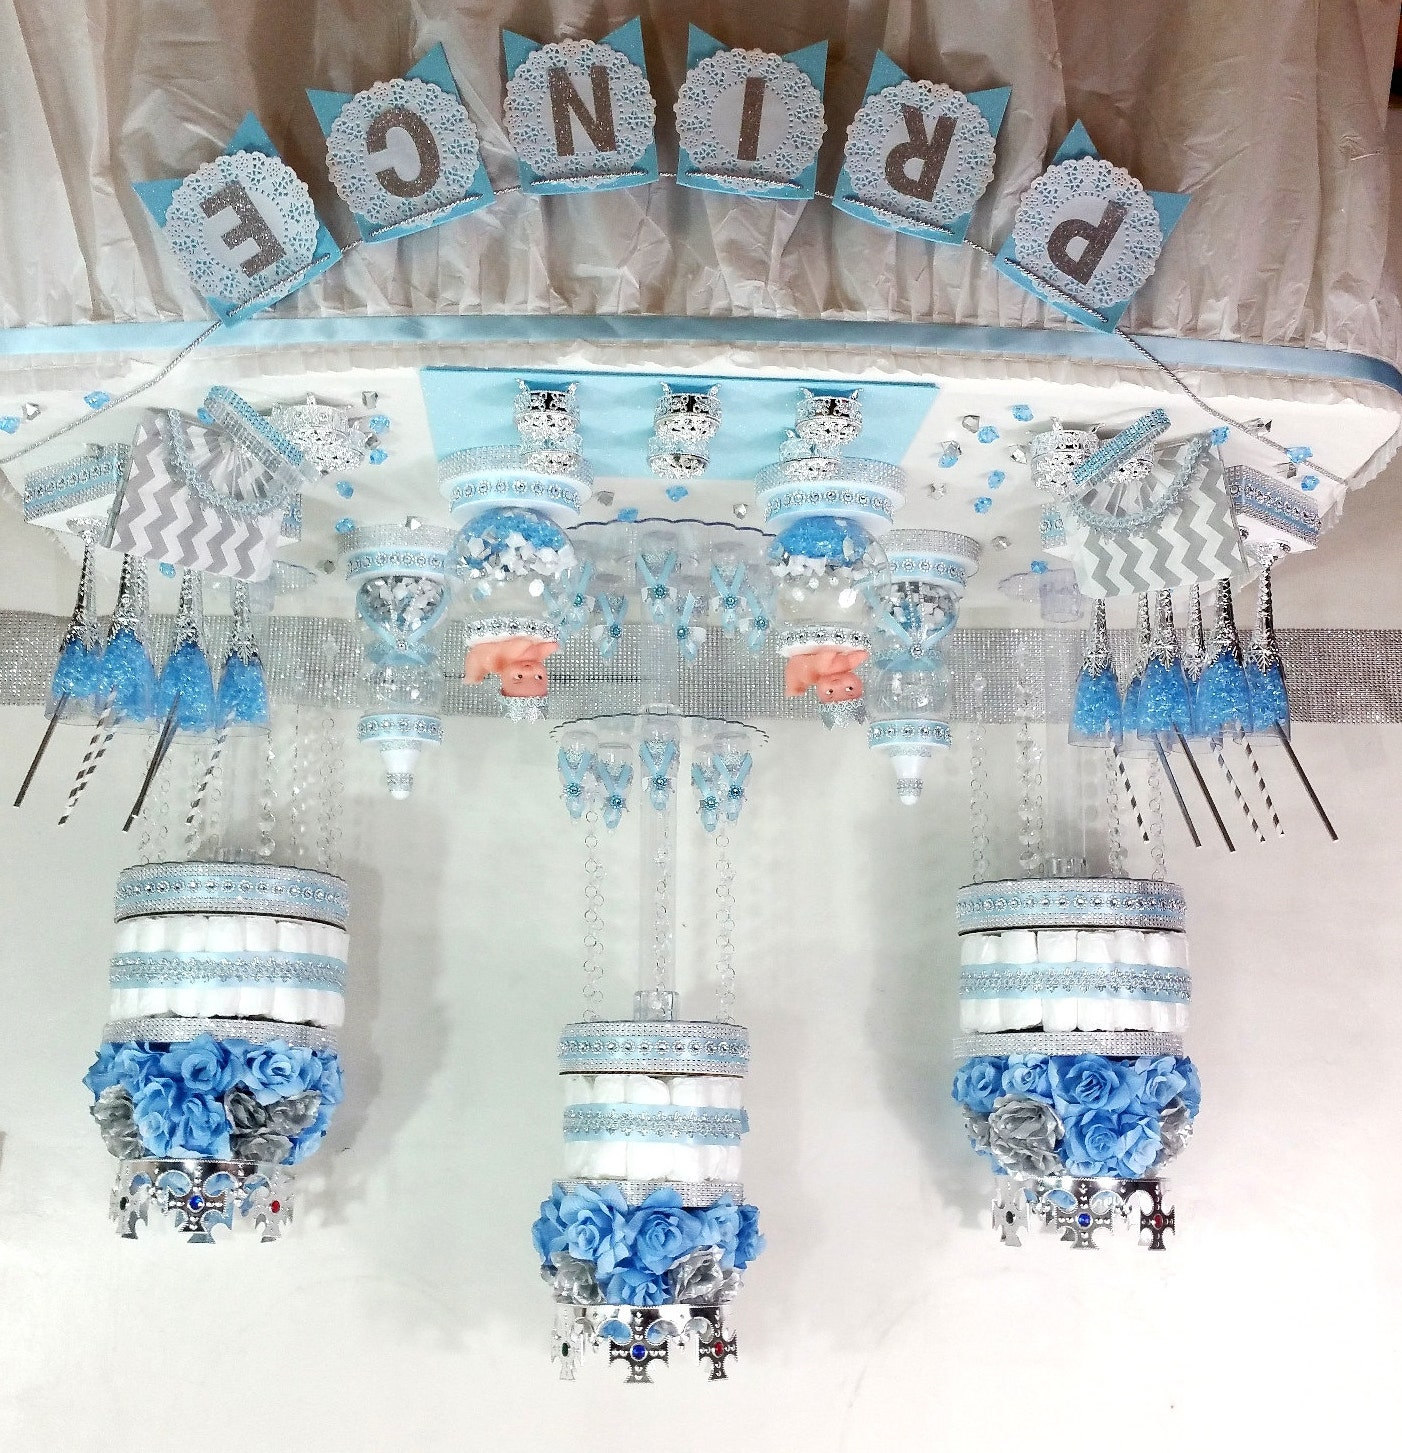 BABY BLUE and SILVER Candy Buffet Diaper Cake Centerpiece with